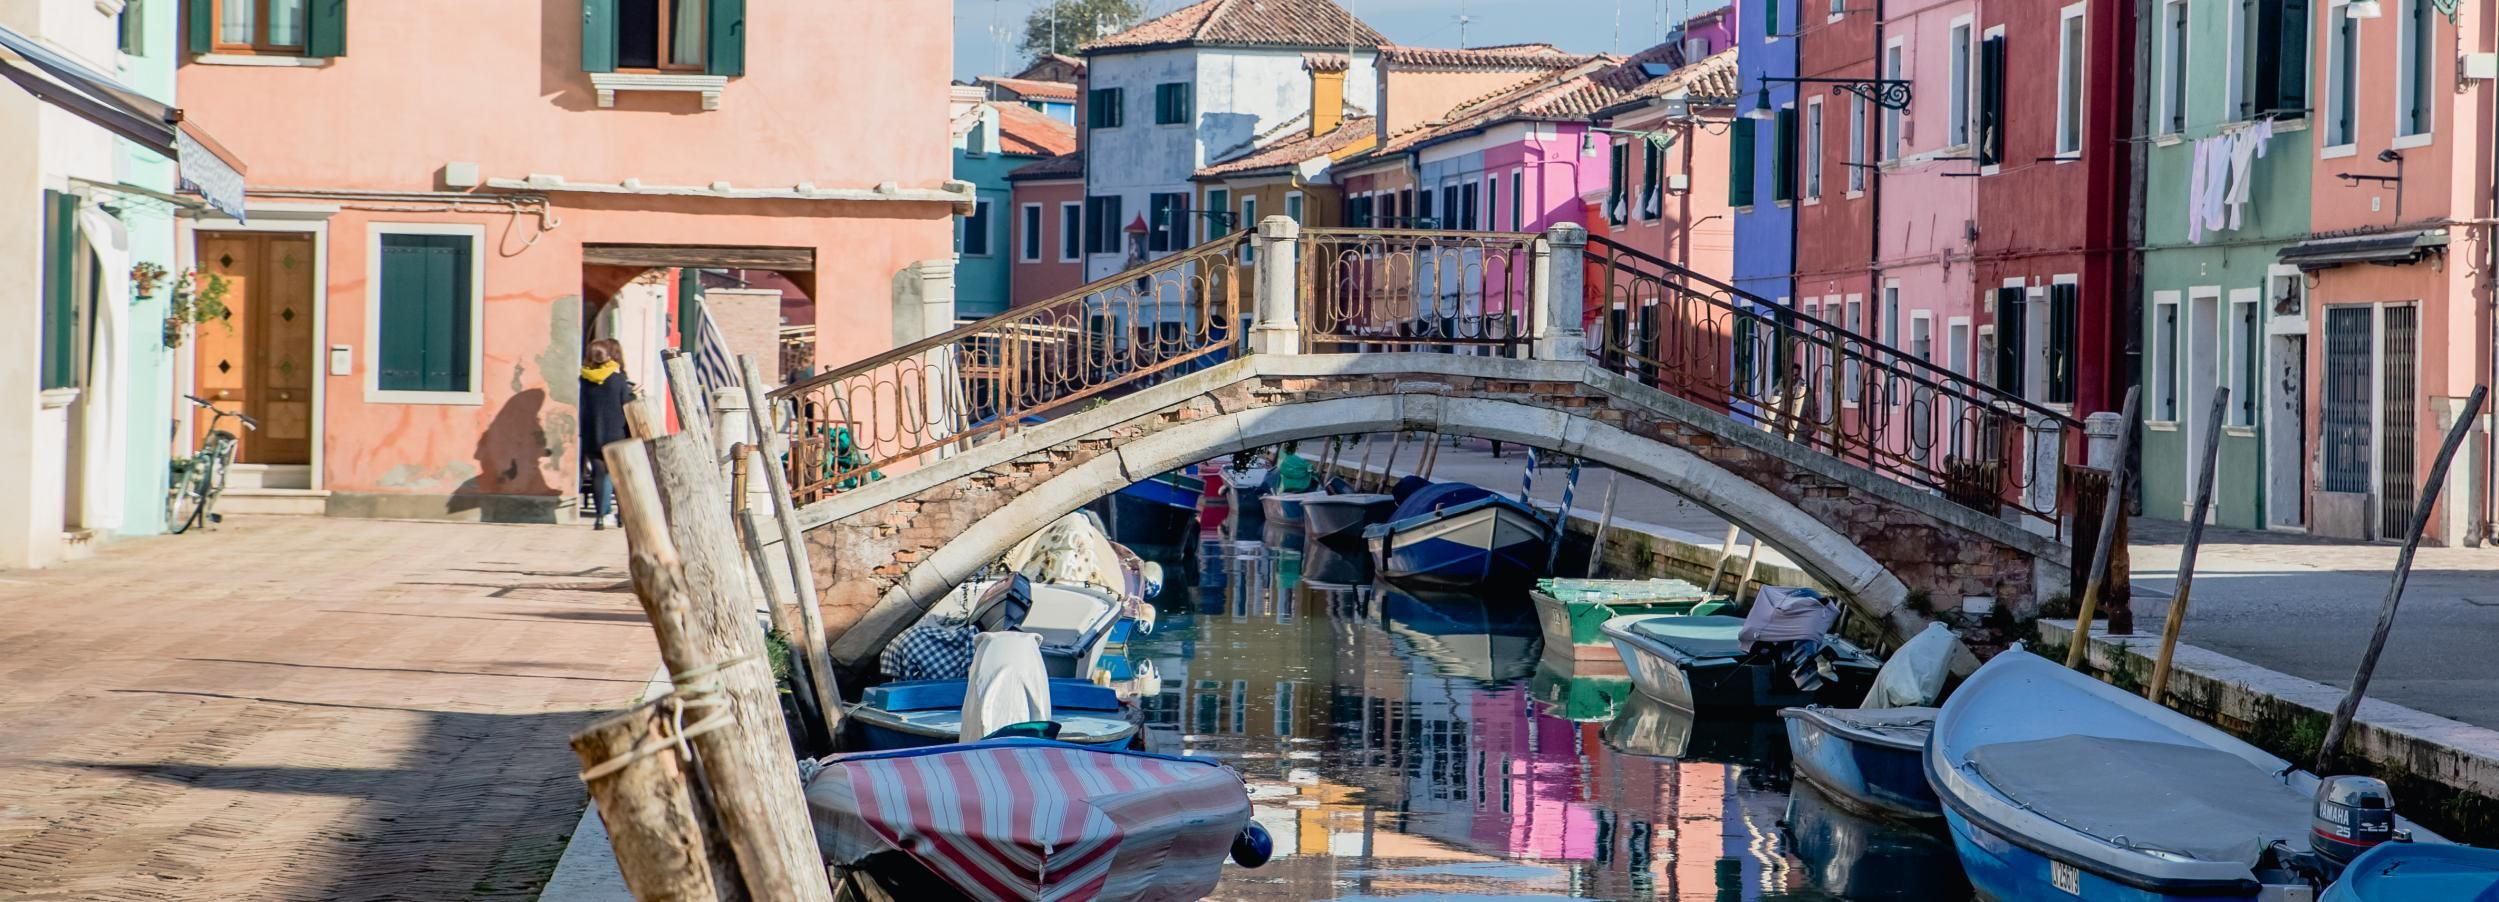 Venice: Grand Canal, Murano and Burano Half-Day Boat Tour